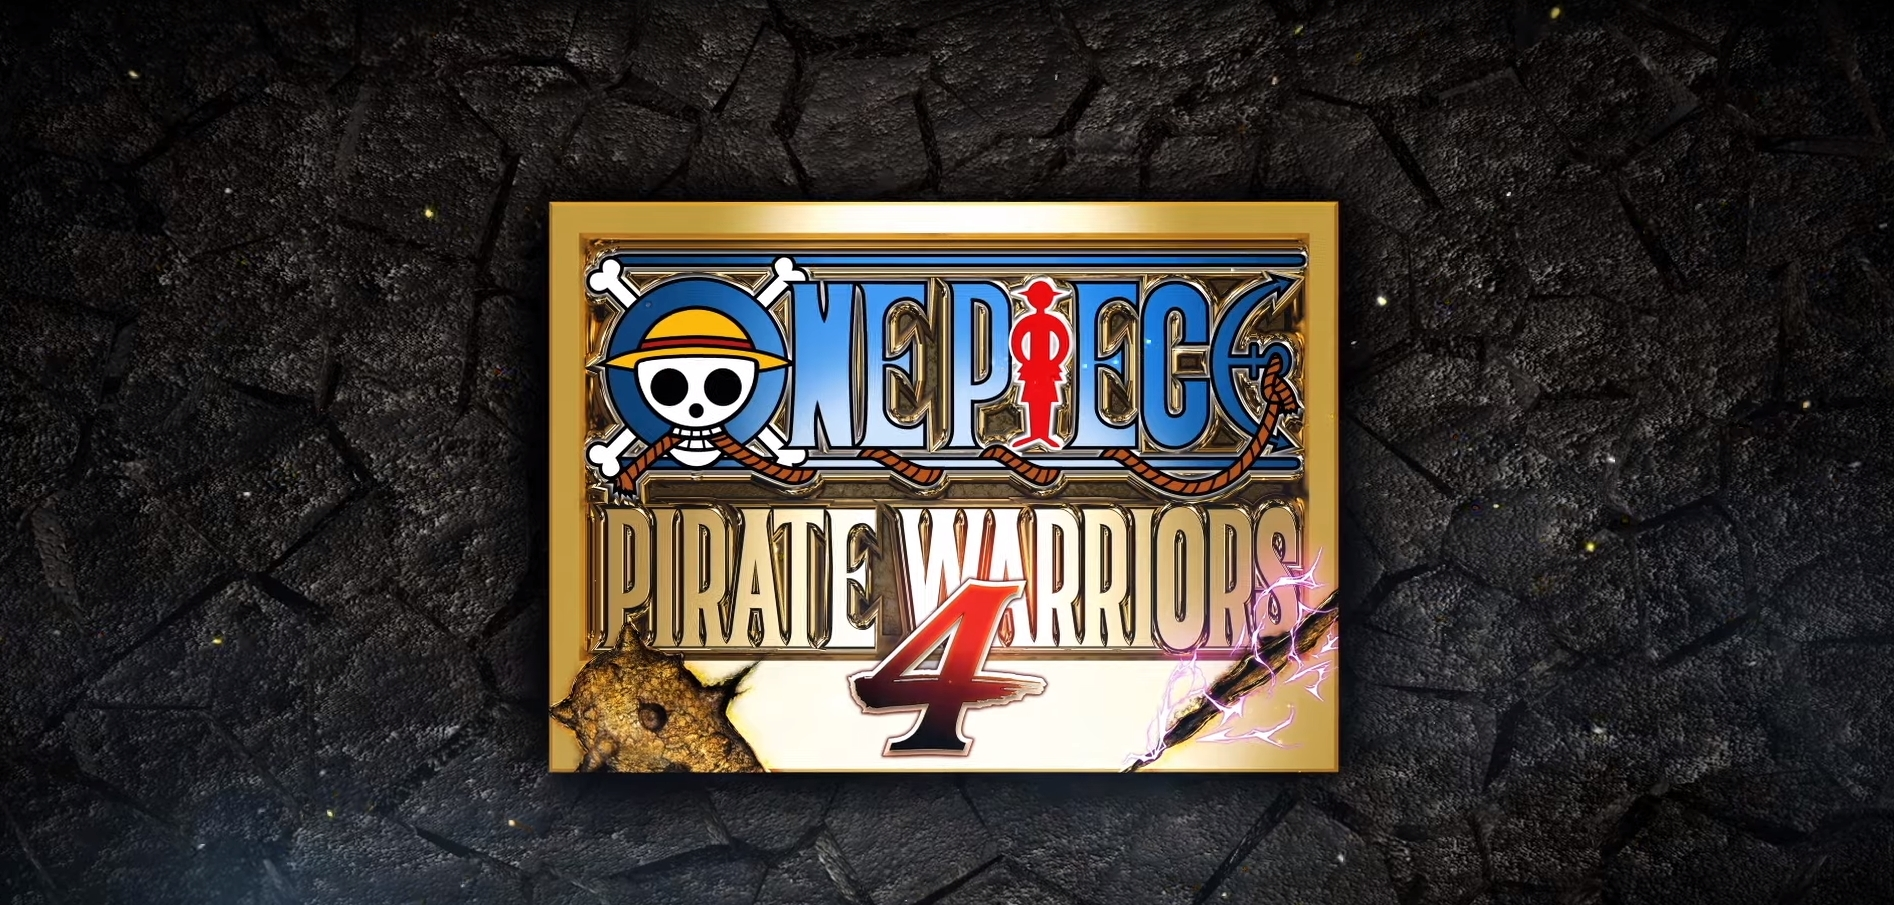 A New Trailer Has Been Released For One Piece: Pirate Warriors 4, Highlights The New World Part Of The Series And Some New Moves